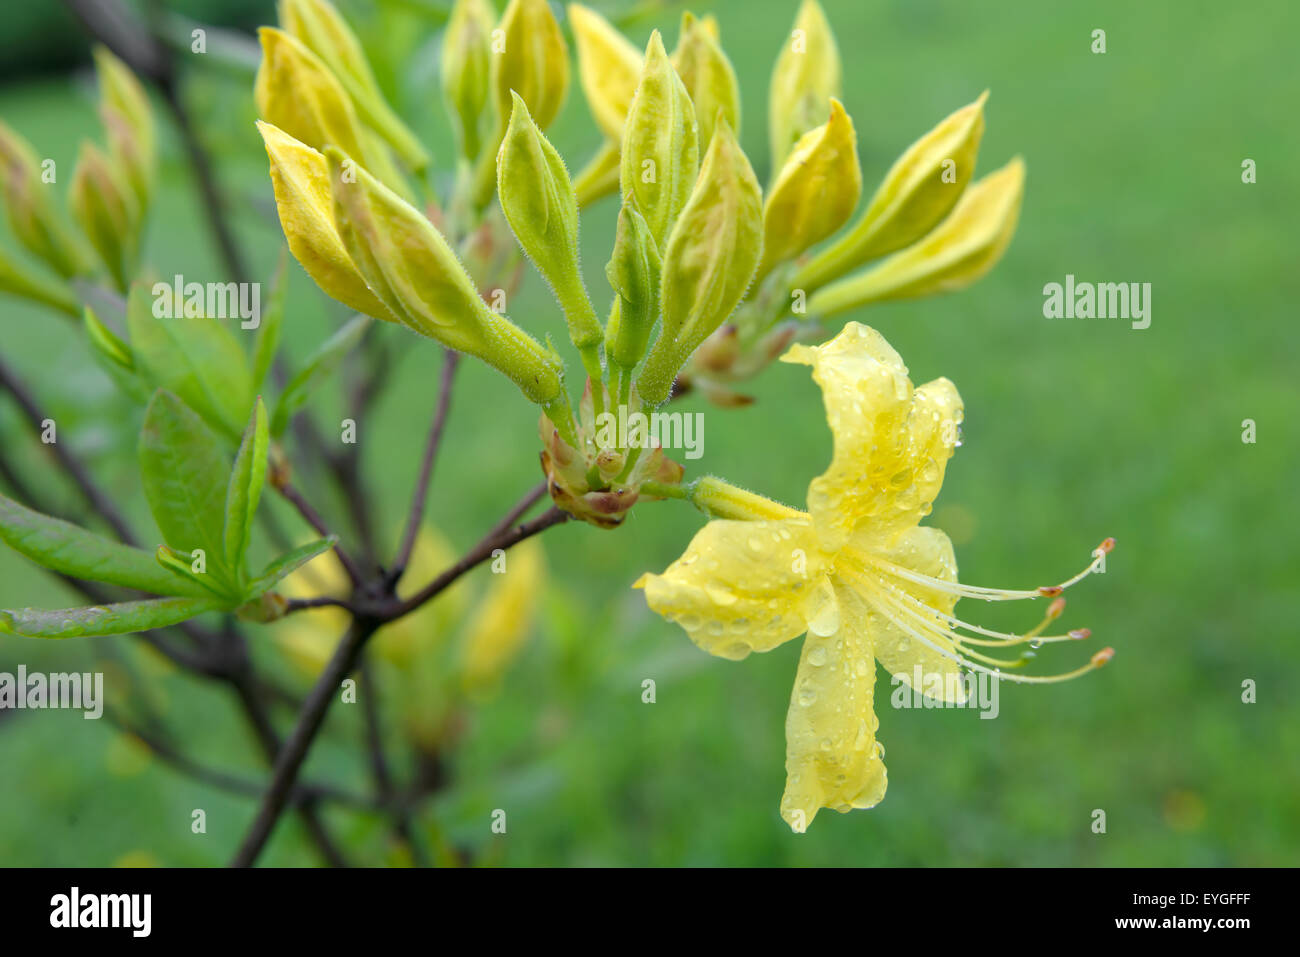 Yellow blooms Rhododendron (Rhododendron luteum) after rain - Stock Image